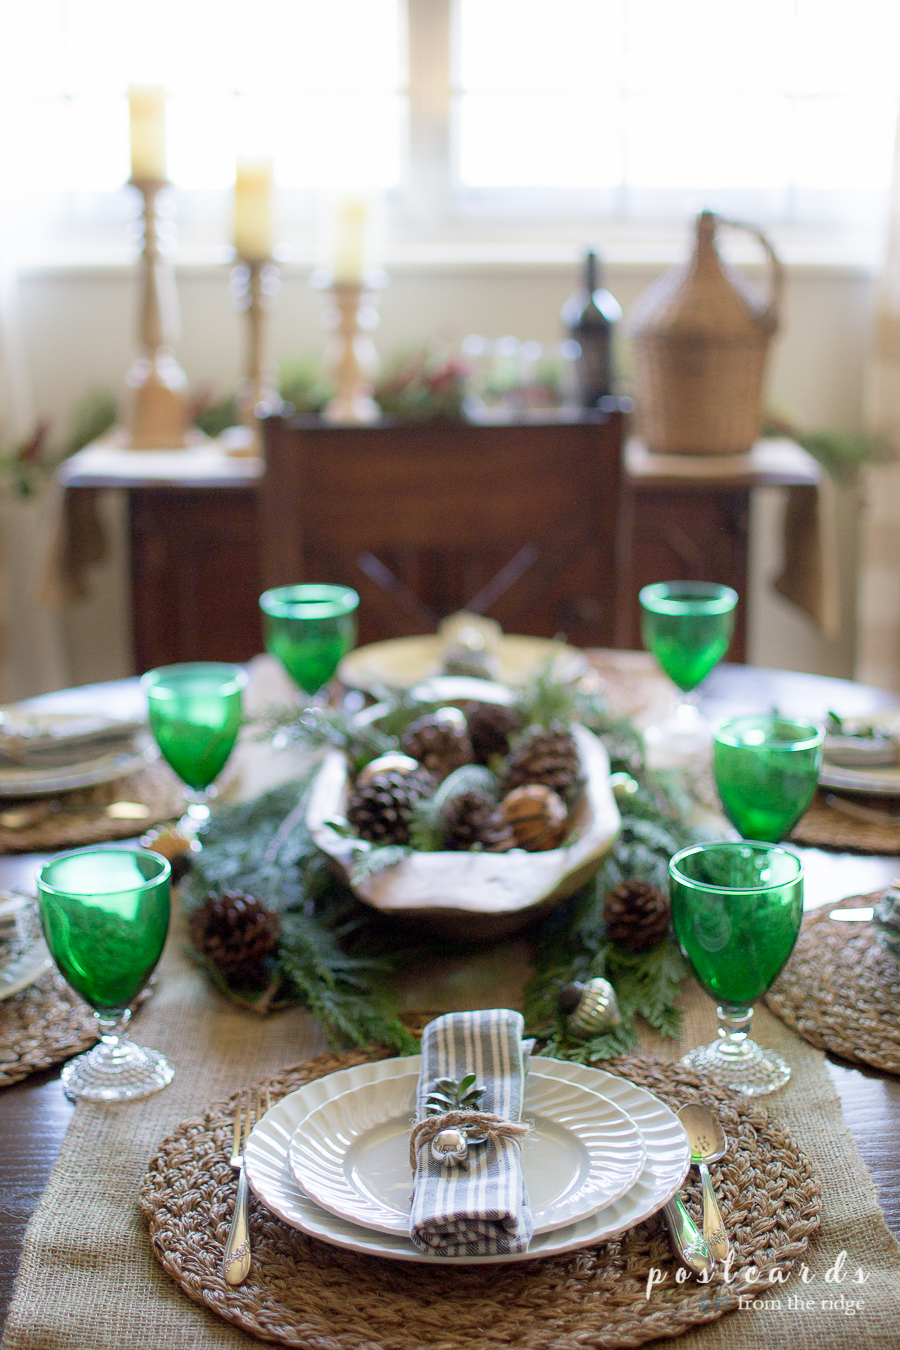 farmhouse table setting with vintage ironstone dishes